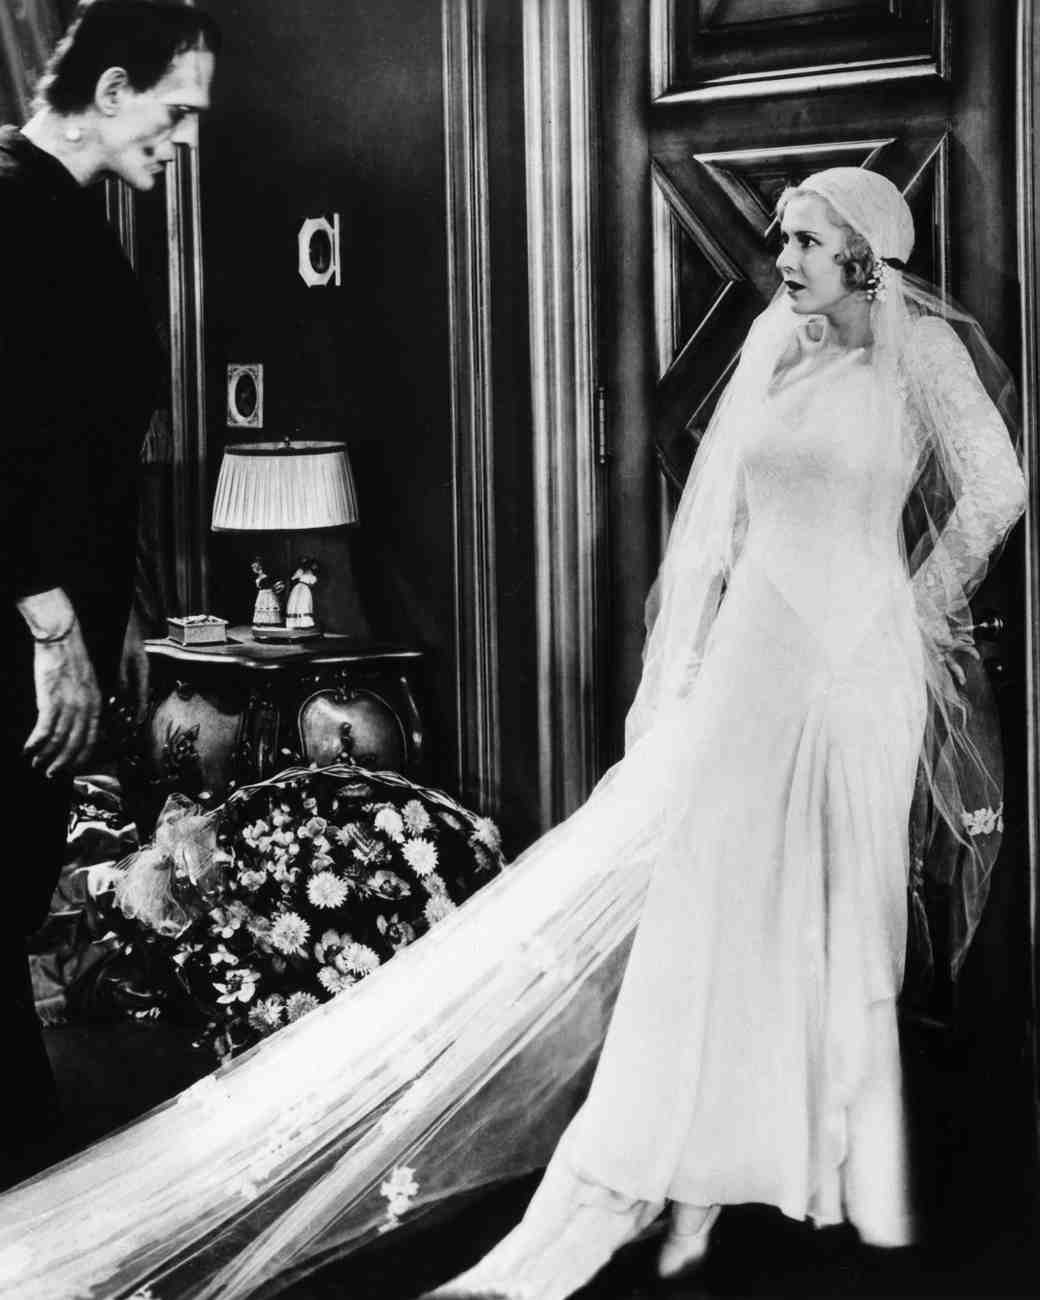 movie-wedding-dresses-frankenstein-mae-clark-0316.jpg